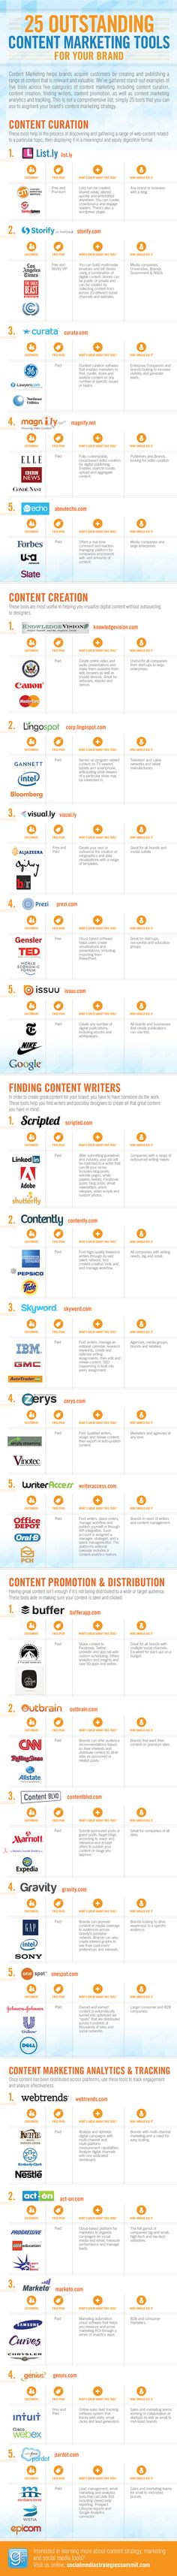 25 Awesome Content Marketing Tools To Use In 2014 [#infographic] #tools